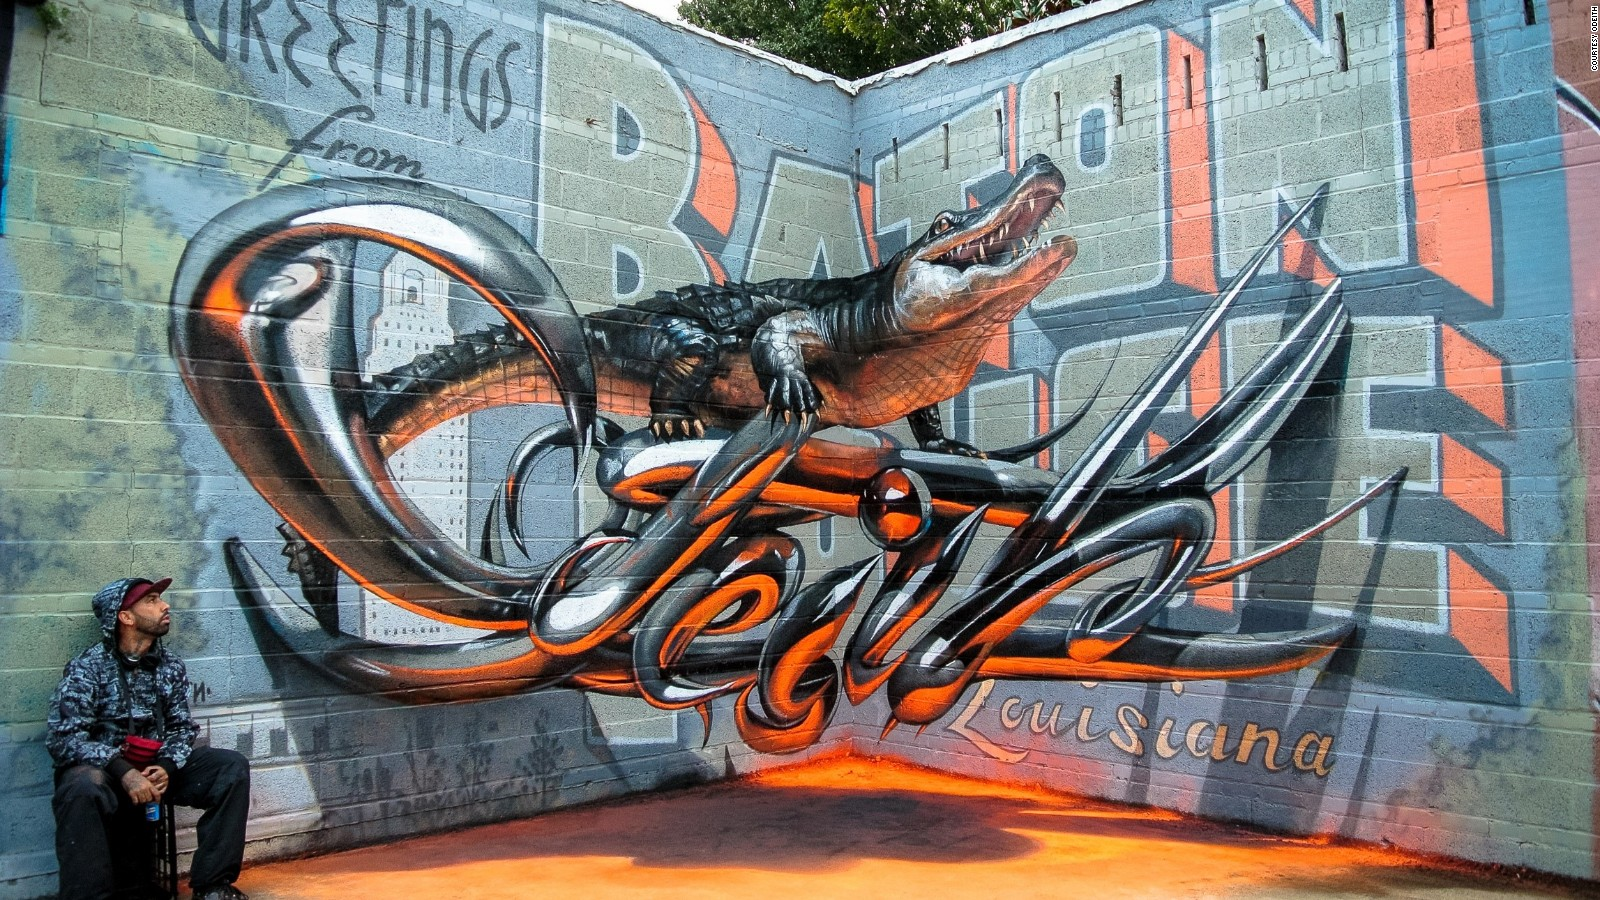 3d Street Art Photos What S The Secret Behind These Eye Popping Illusions Cnn Travel